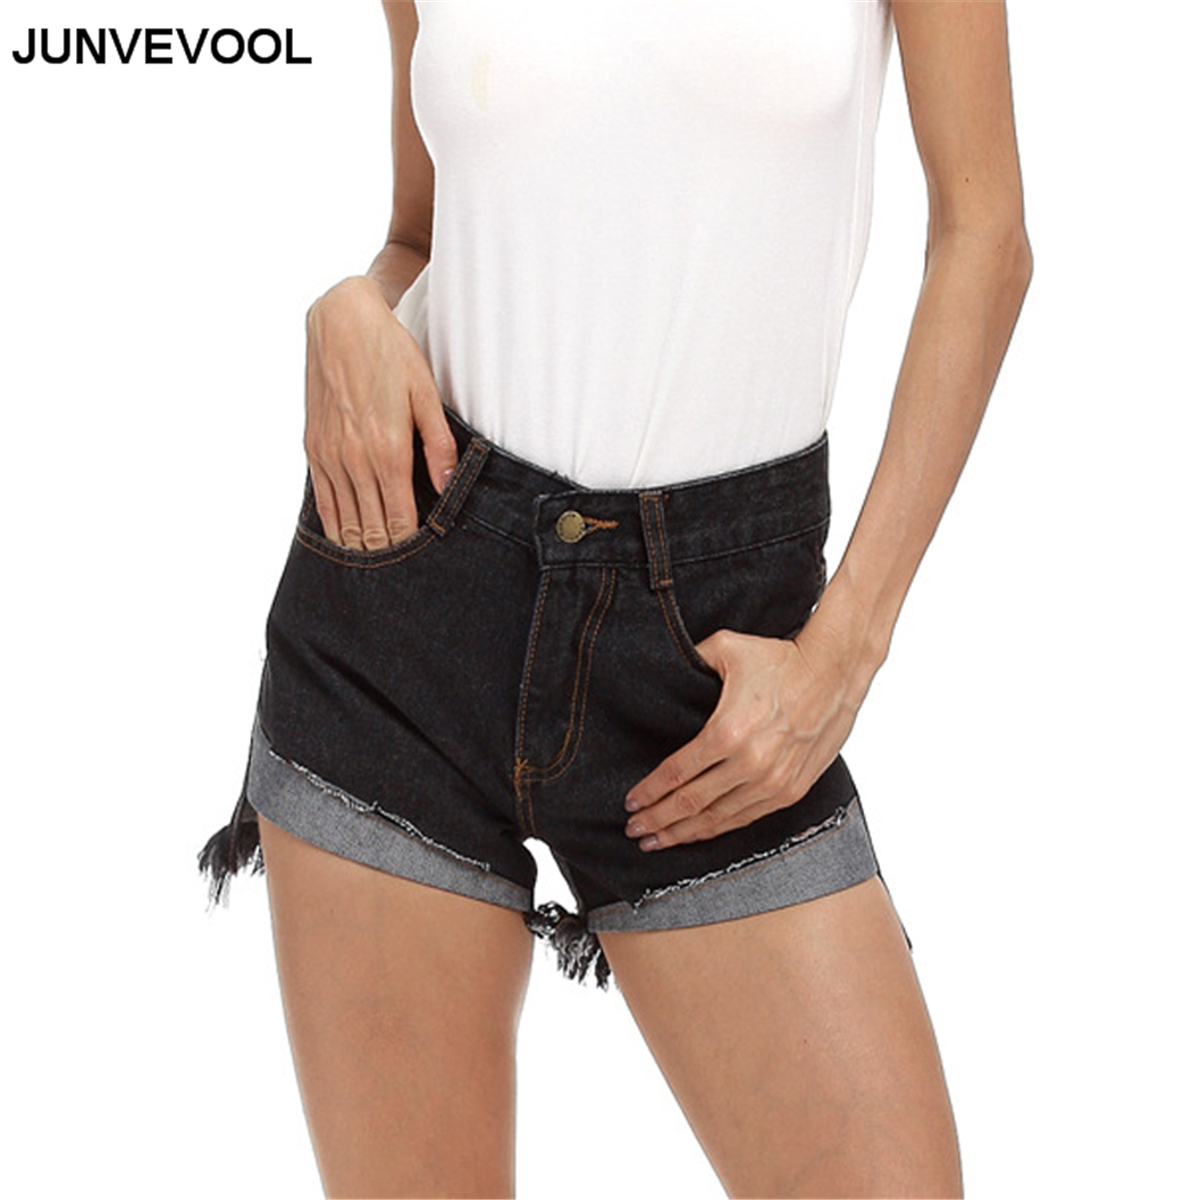 Compare Prices on Short Shorts for Sale- Online Shopping/Buy Low ...